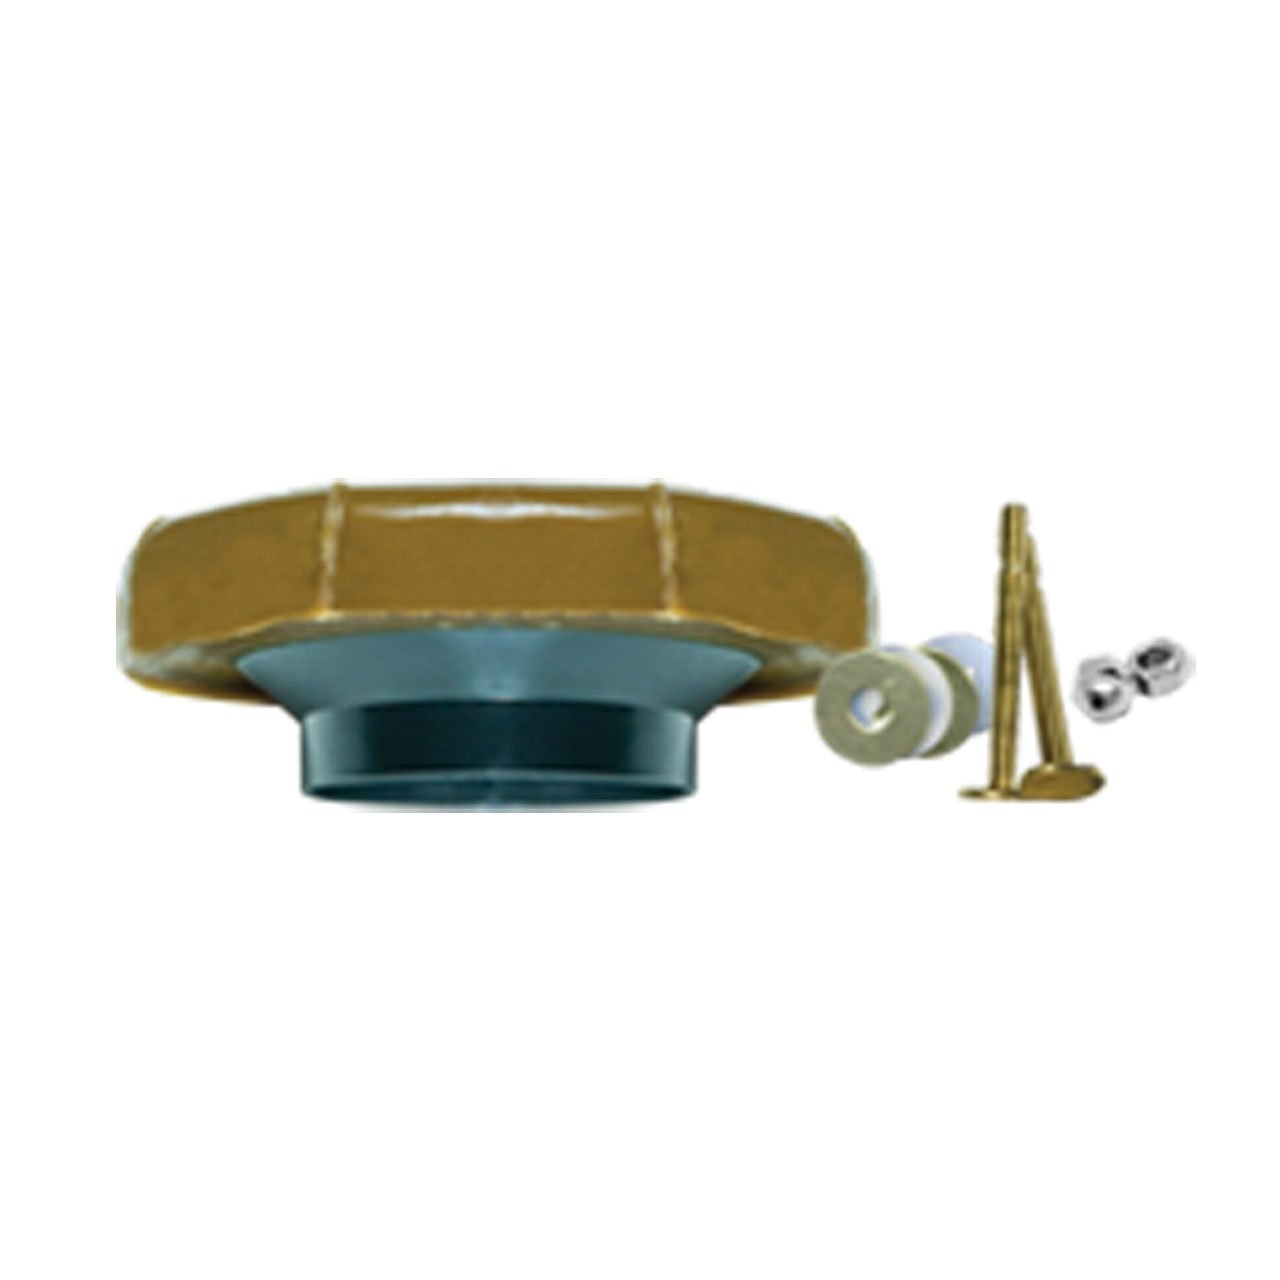 Fluidmaster 7512 Toilet Wax Ring Kit With Flange And Bolts, For Use With 3 In And 4 In Waste Lines, Plastic